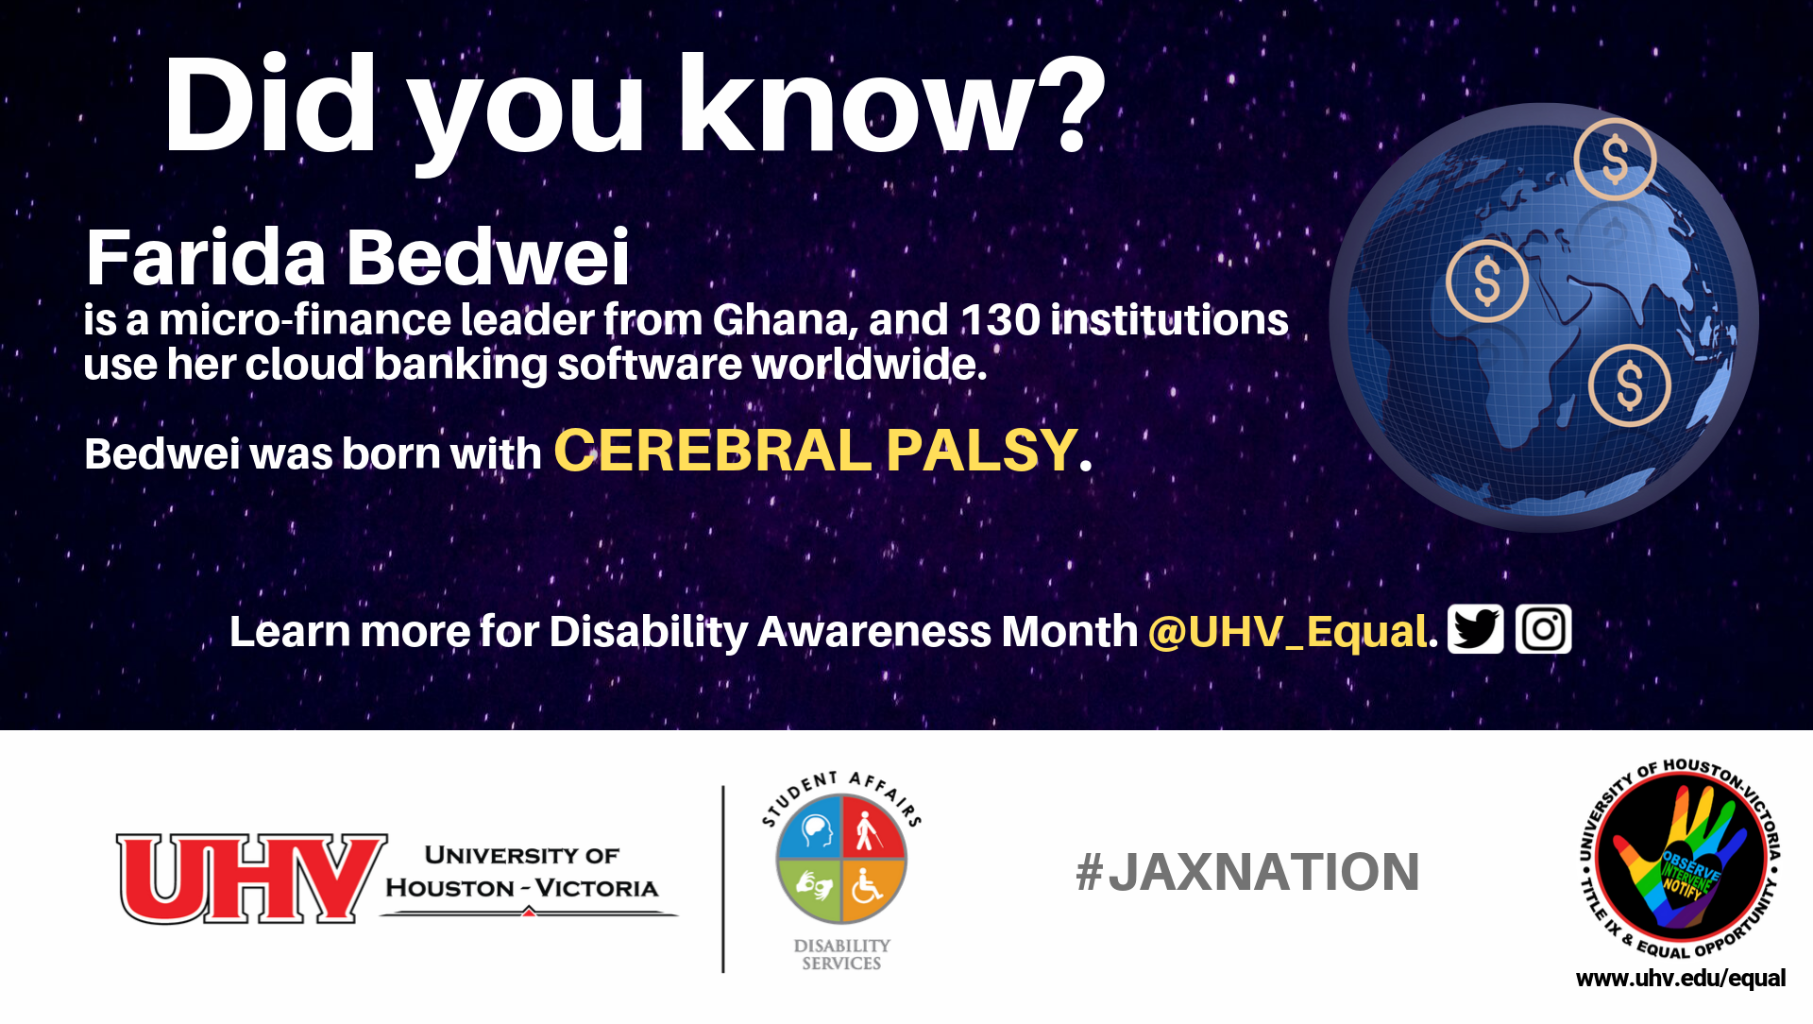 Did you know? Farida Bedwei is a micro-finance leader from Ghana, and 130 institutions use her cloud banking software worldwide. Bedwei was born with Cerebral Palsy. UHV Disability Services Logo. Learn more for Disability Awareness Month @UHV_Equal.#jaxnation. University of Houston-Victoria Title IX and Equal Opportunity Logo (rainbow hand with heart insert with words Observe, Intervene, Notify).